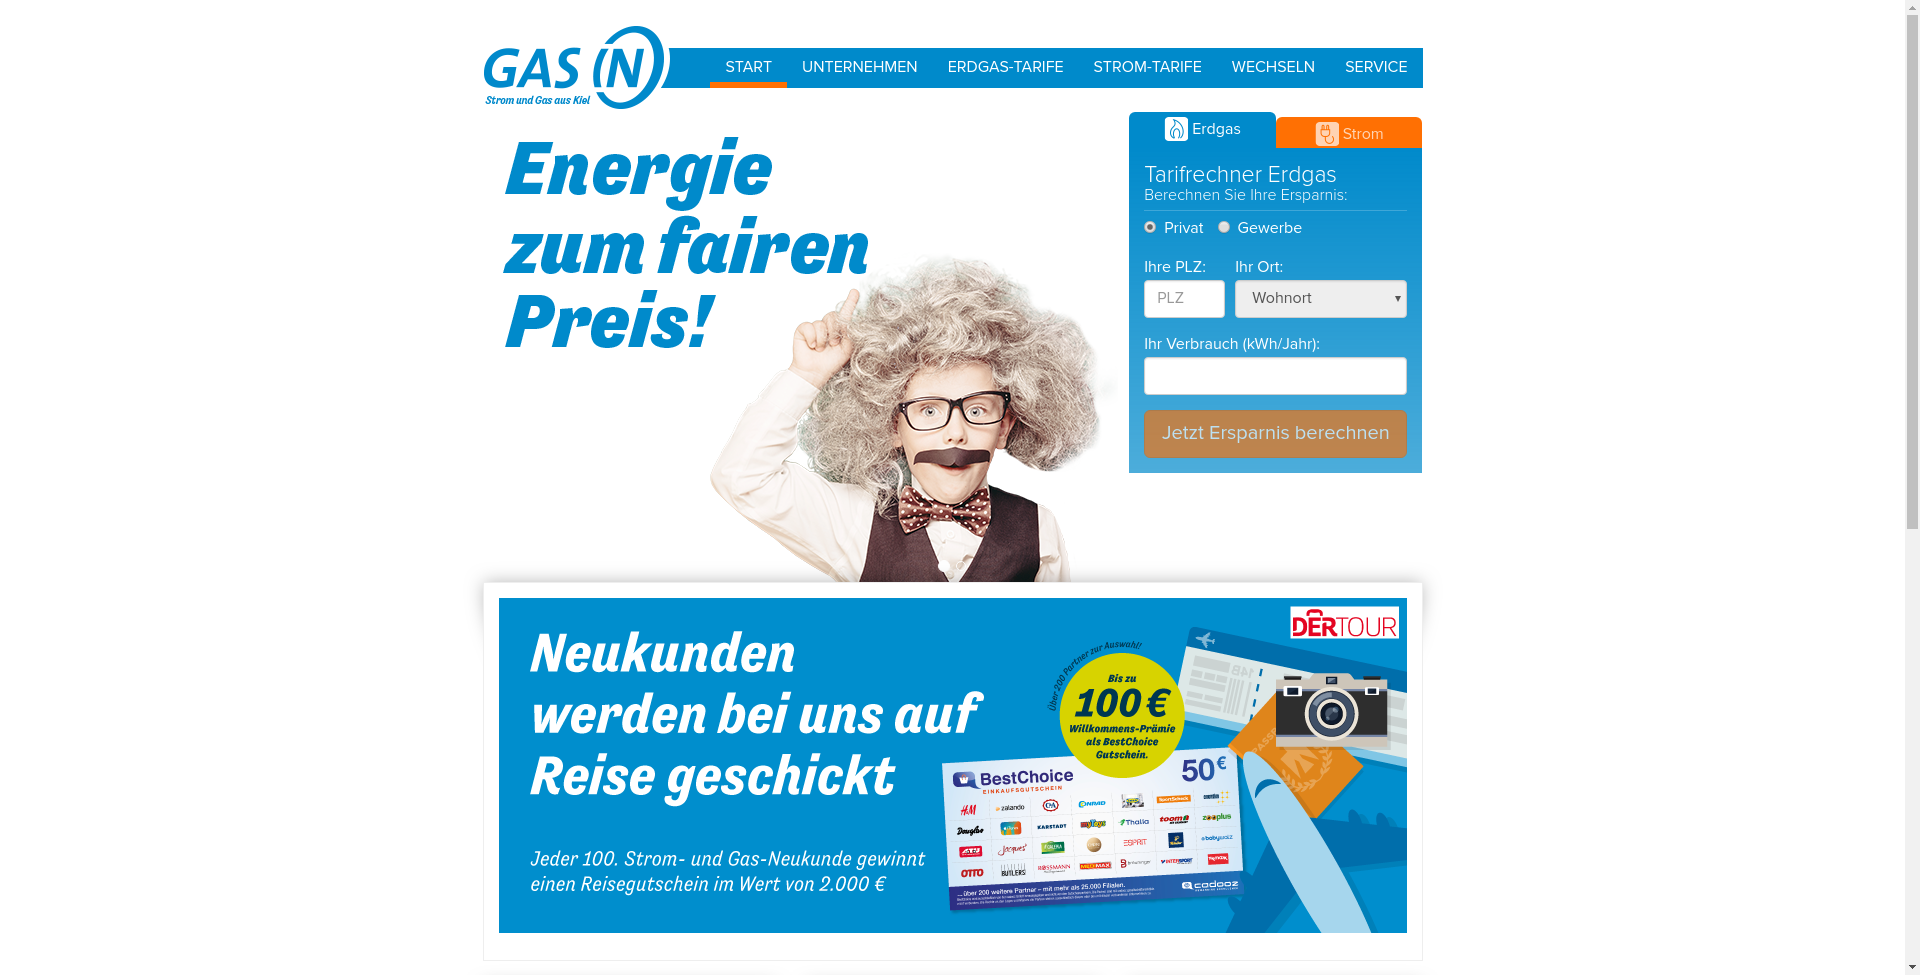 GAS IN